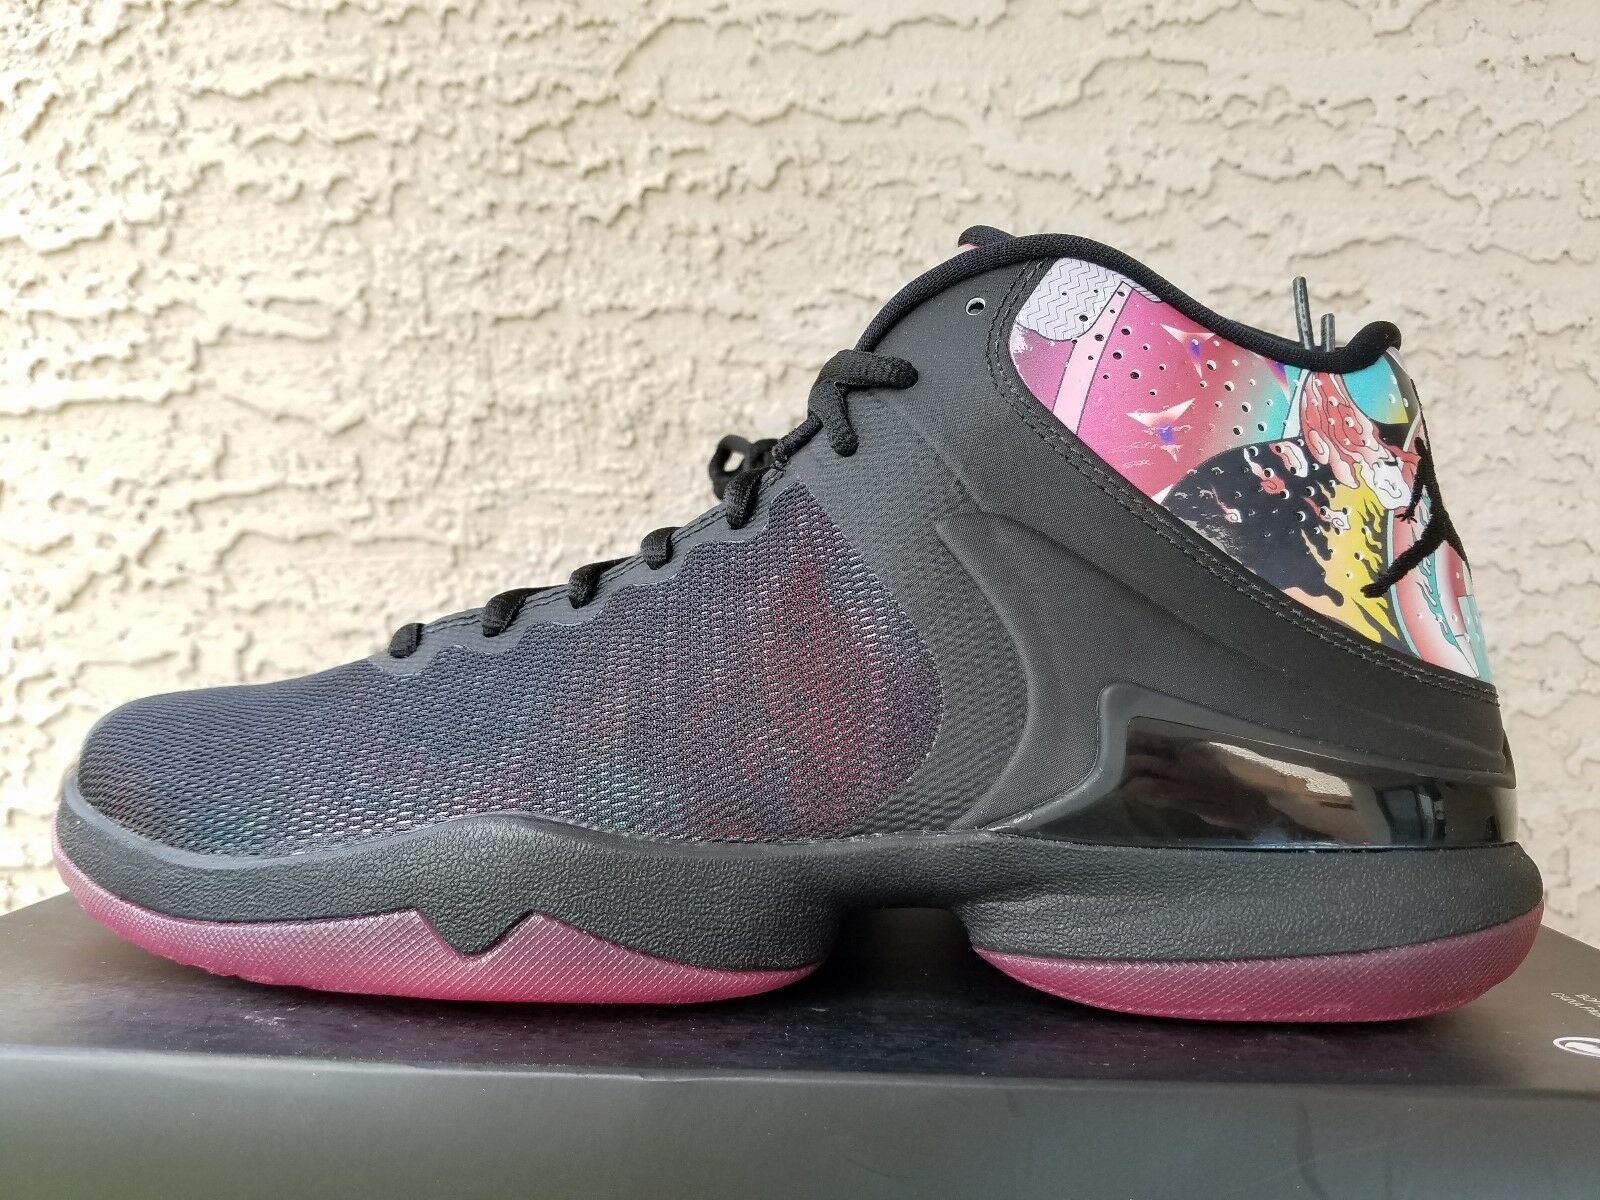 promo code b6ebc 652aa ... Air Jordan 5 CNY Chinese New Year Picture 1 of 12 .